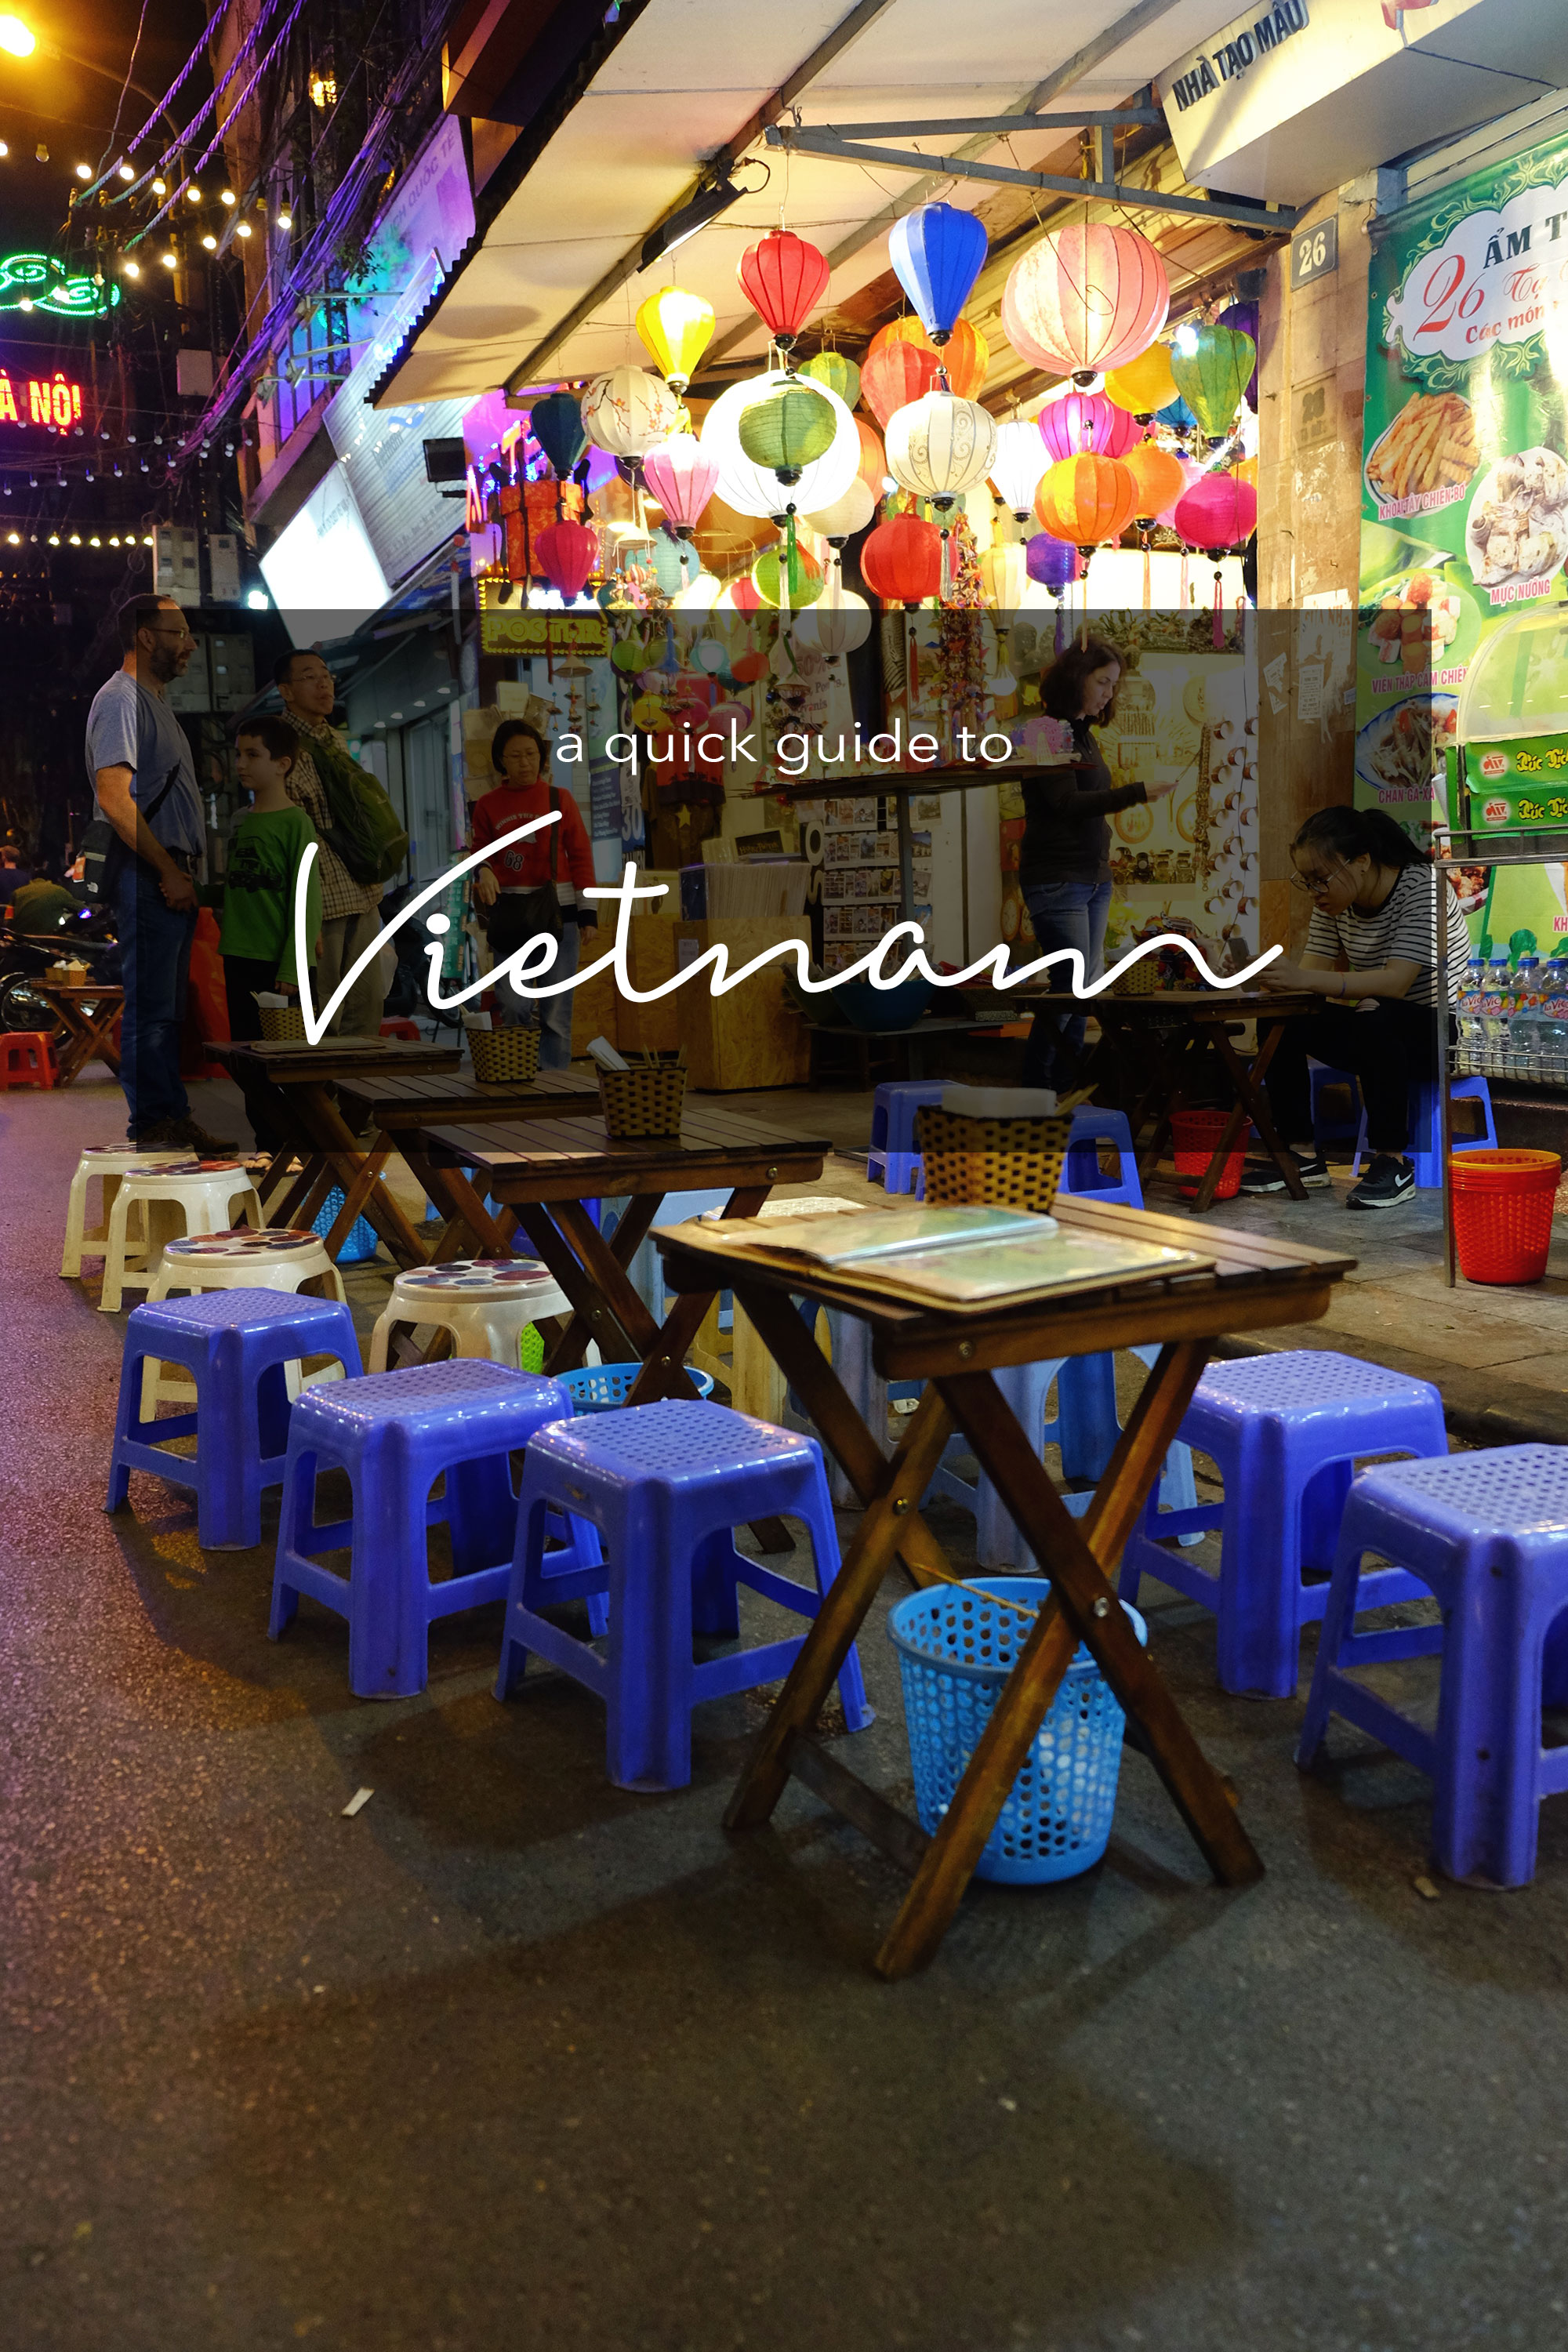 How to spend 6 days in Vietnam, a quick guide. #vietnam #travel